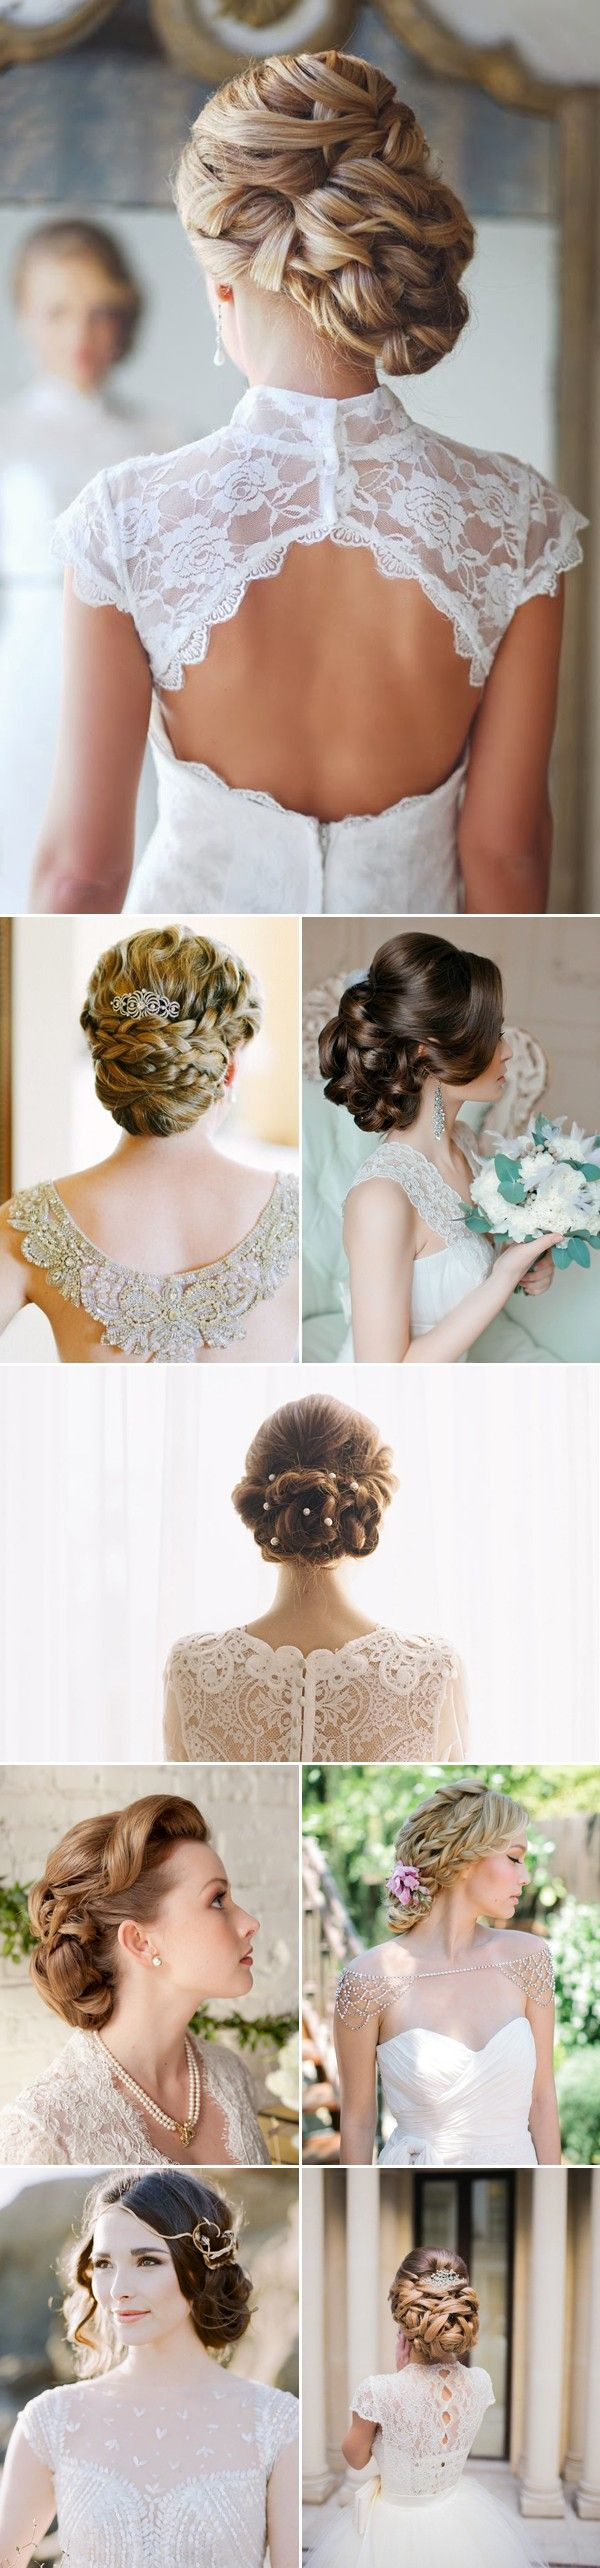 braided updo hairstyles for wedding